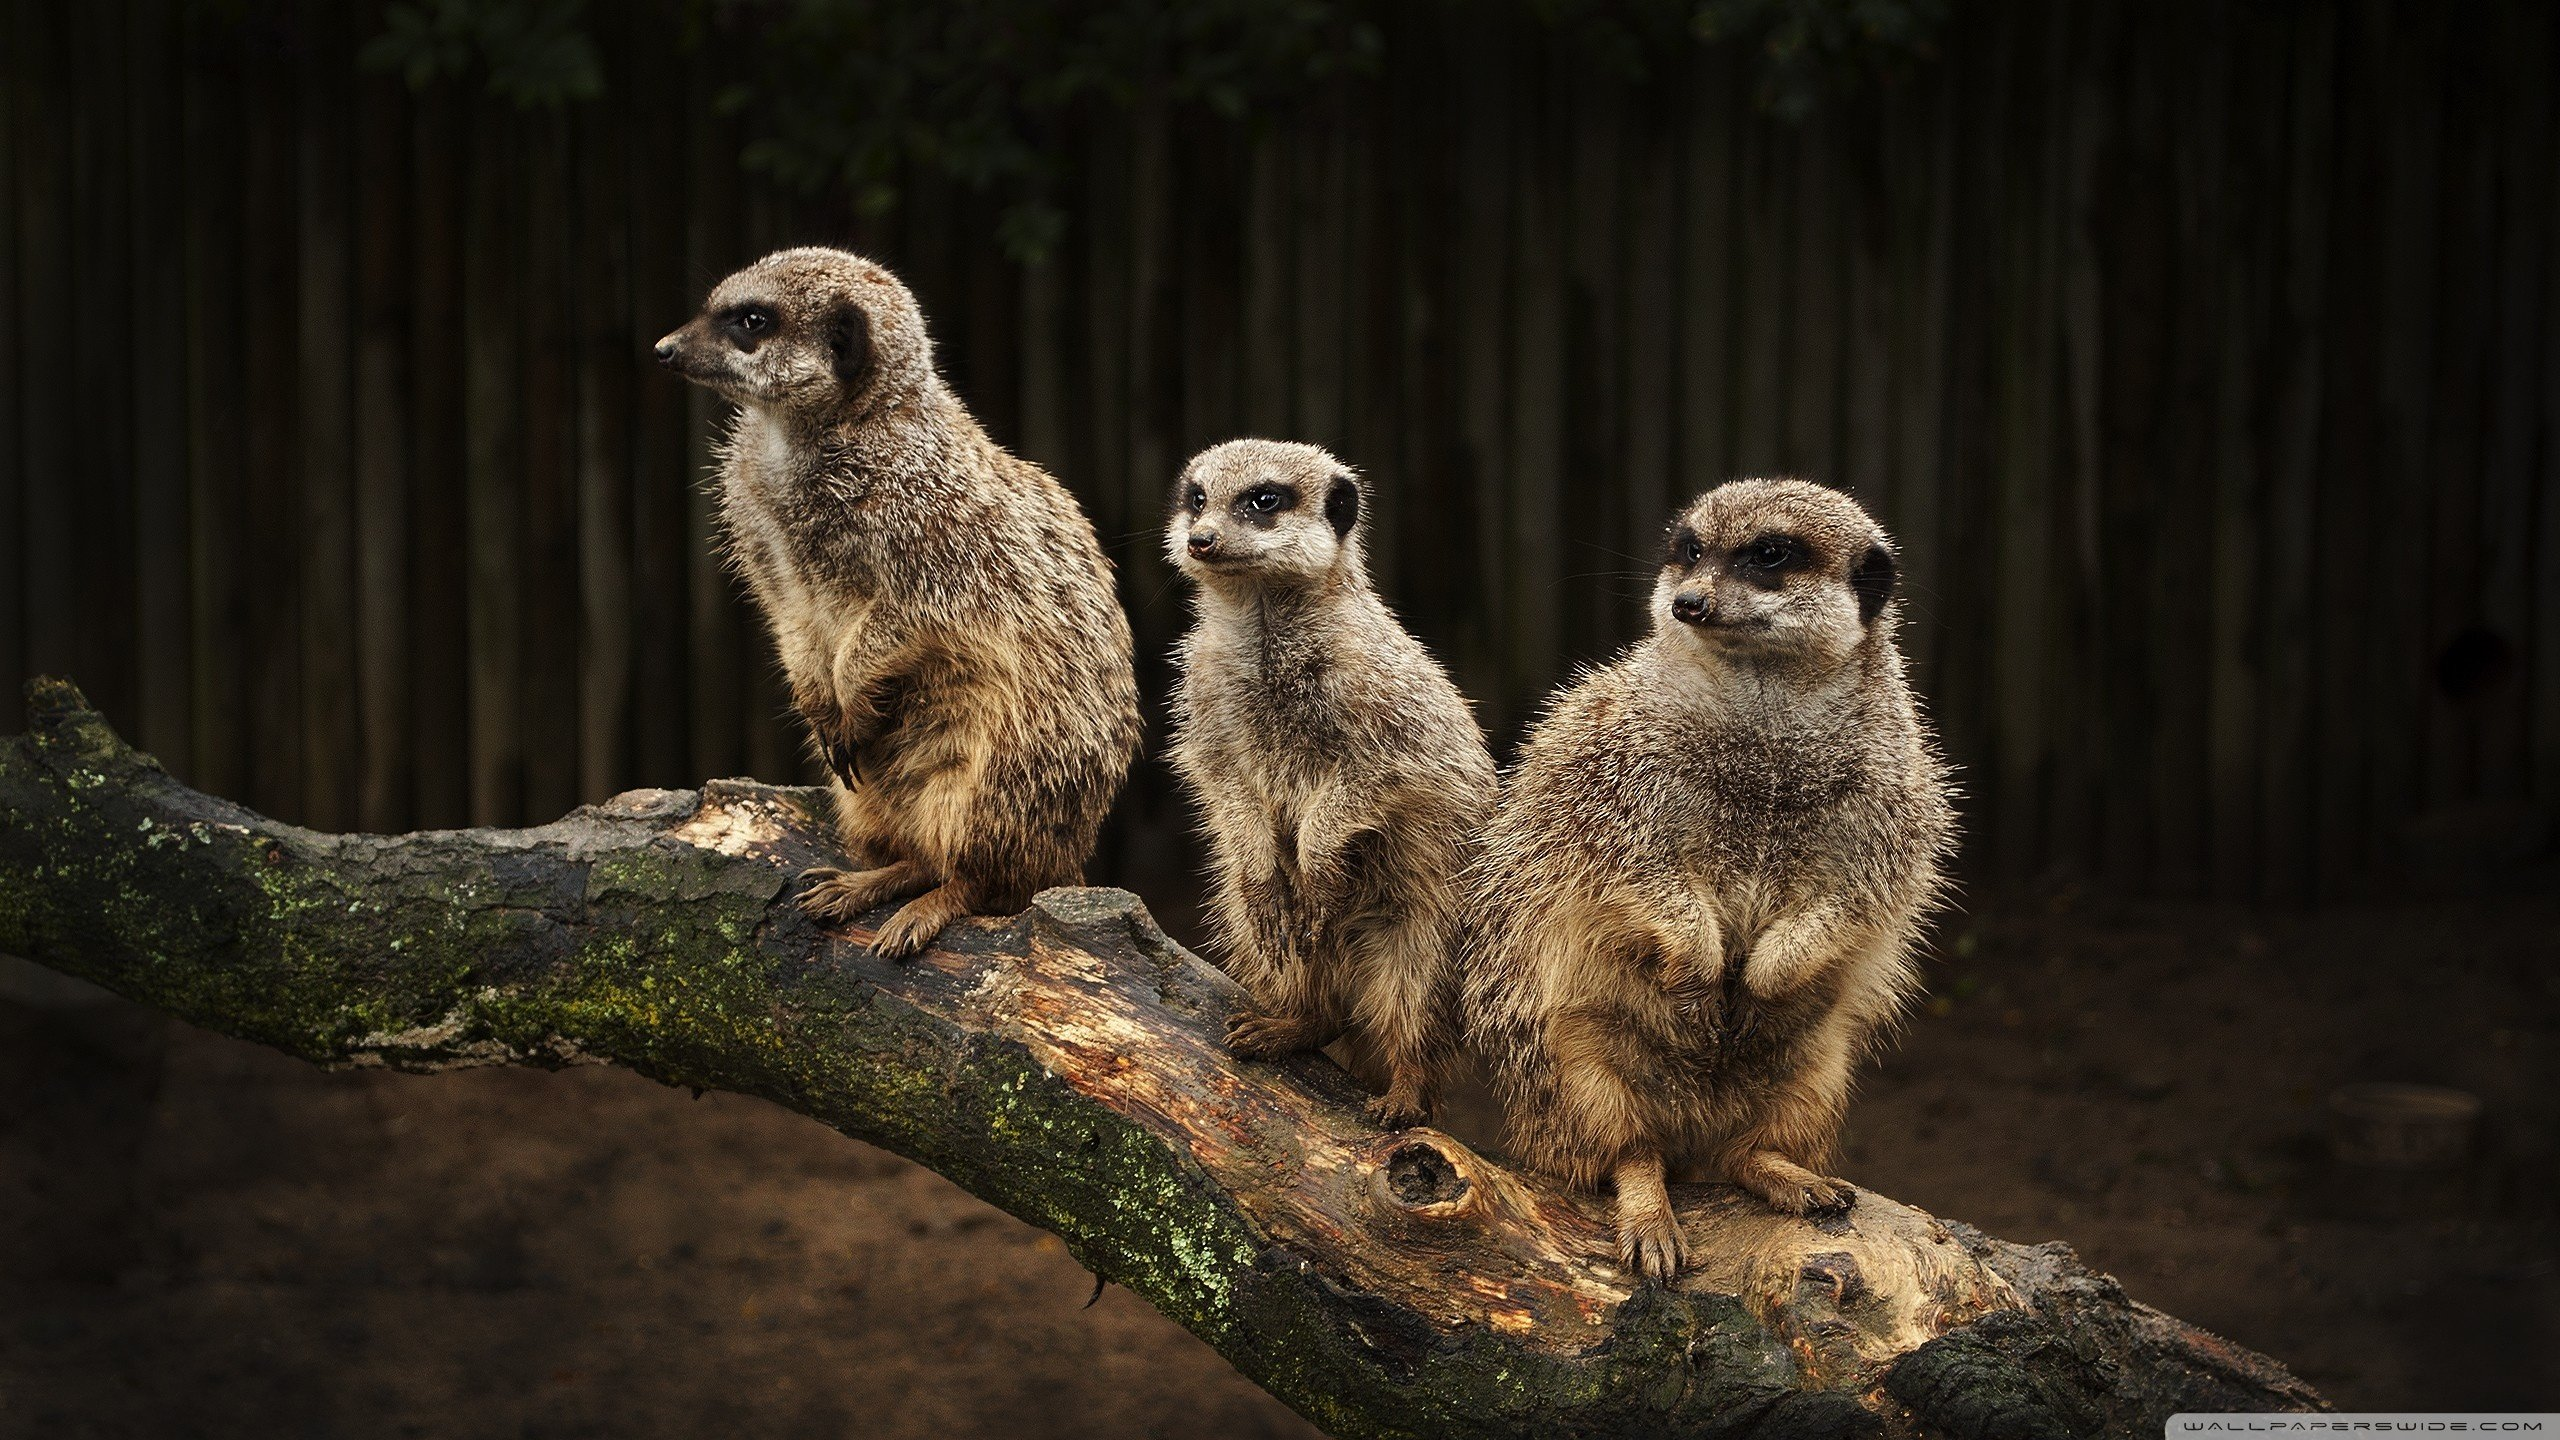 Download hd 2560x1440 Meerkat PC wallpaper ID:164564 for free